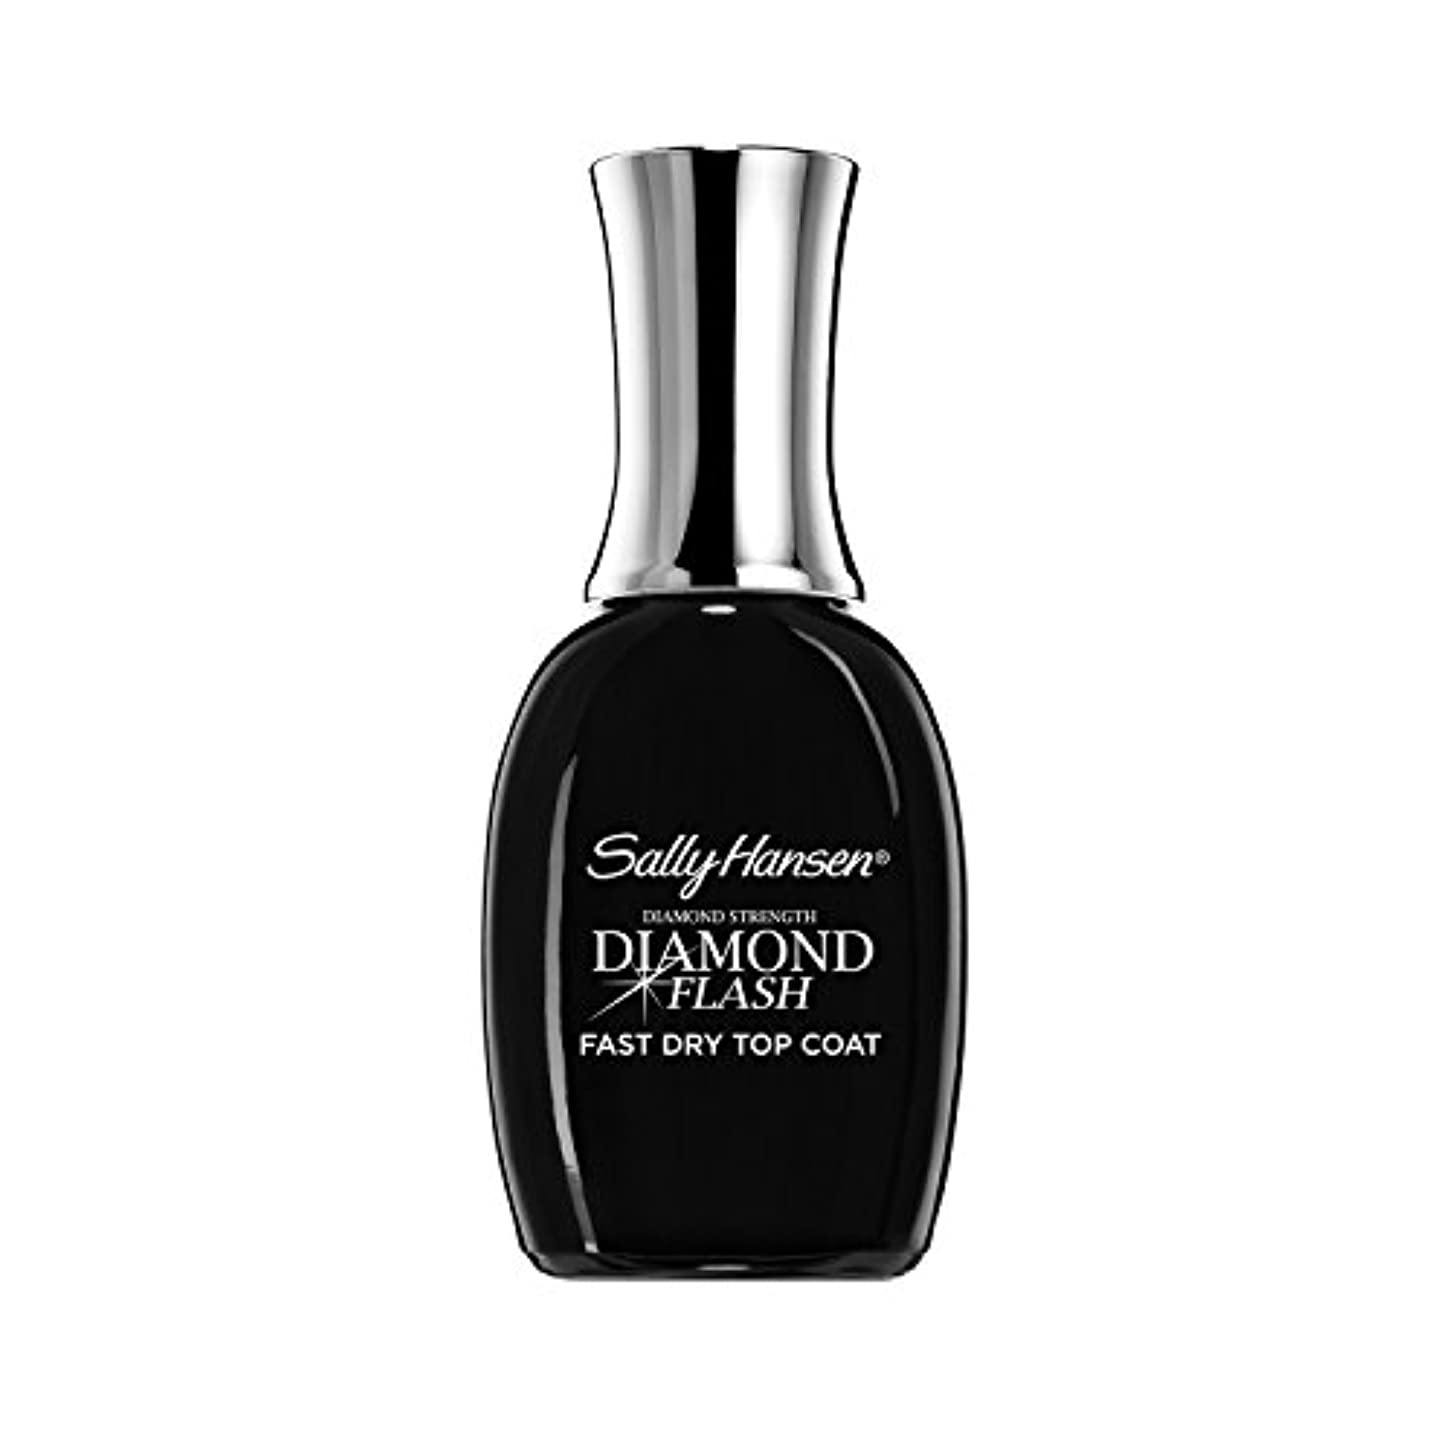 Sally Hansen Diamond Flash Fast Dry Top Coat 14 ml (並行輸入品)